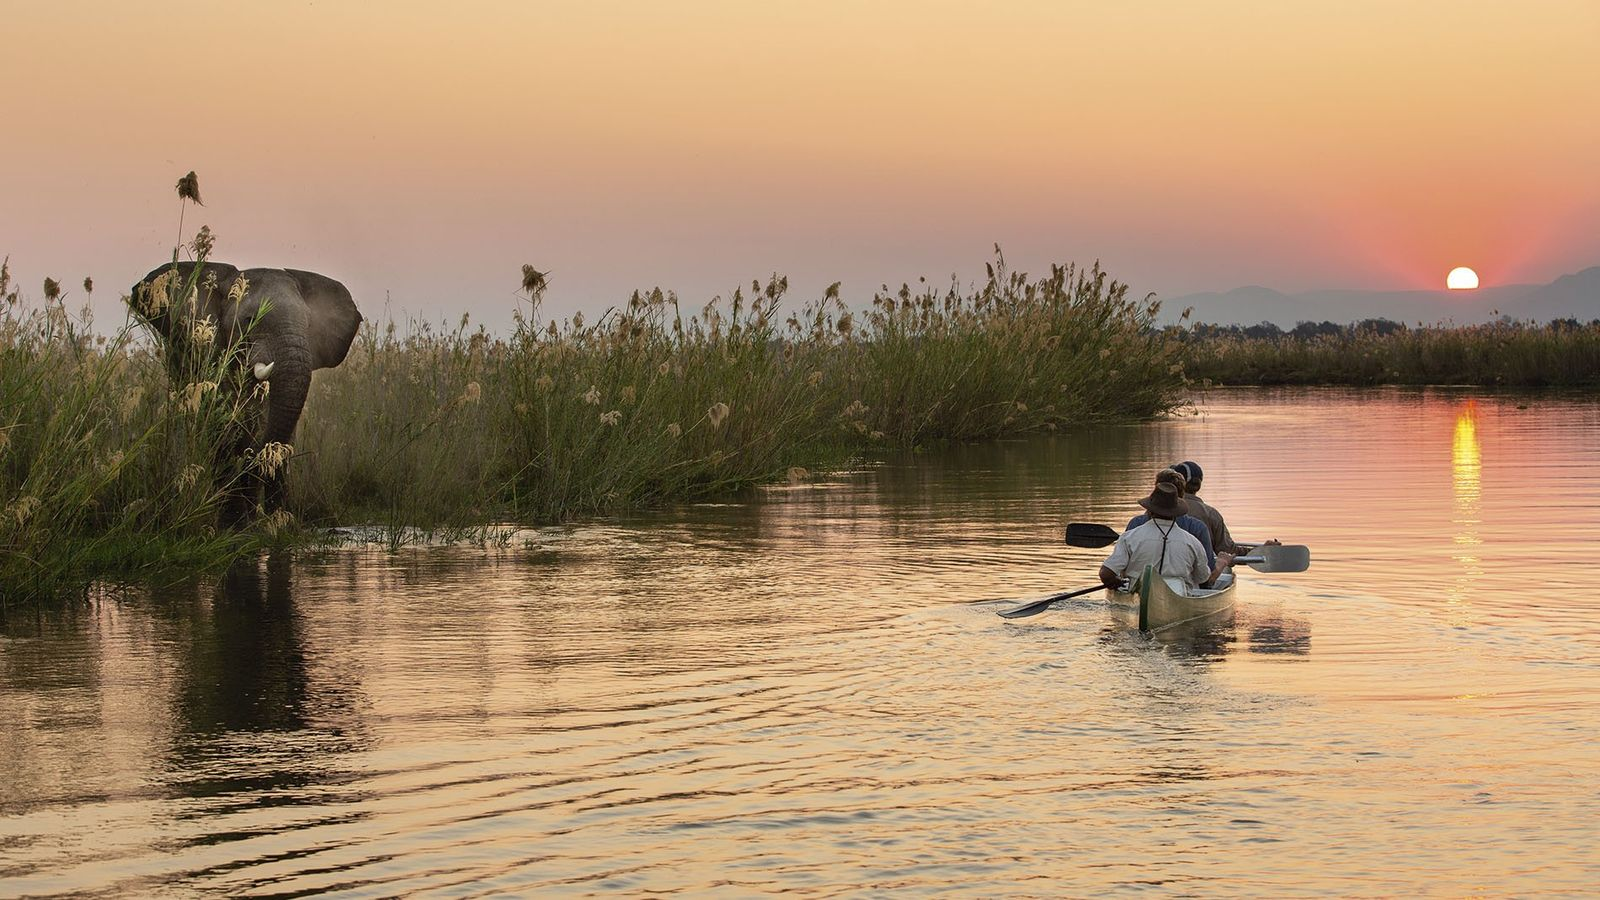 Kayaking on the Zambezi at sunset.